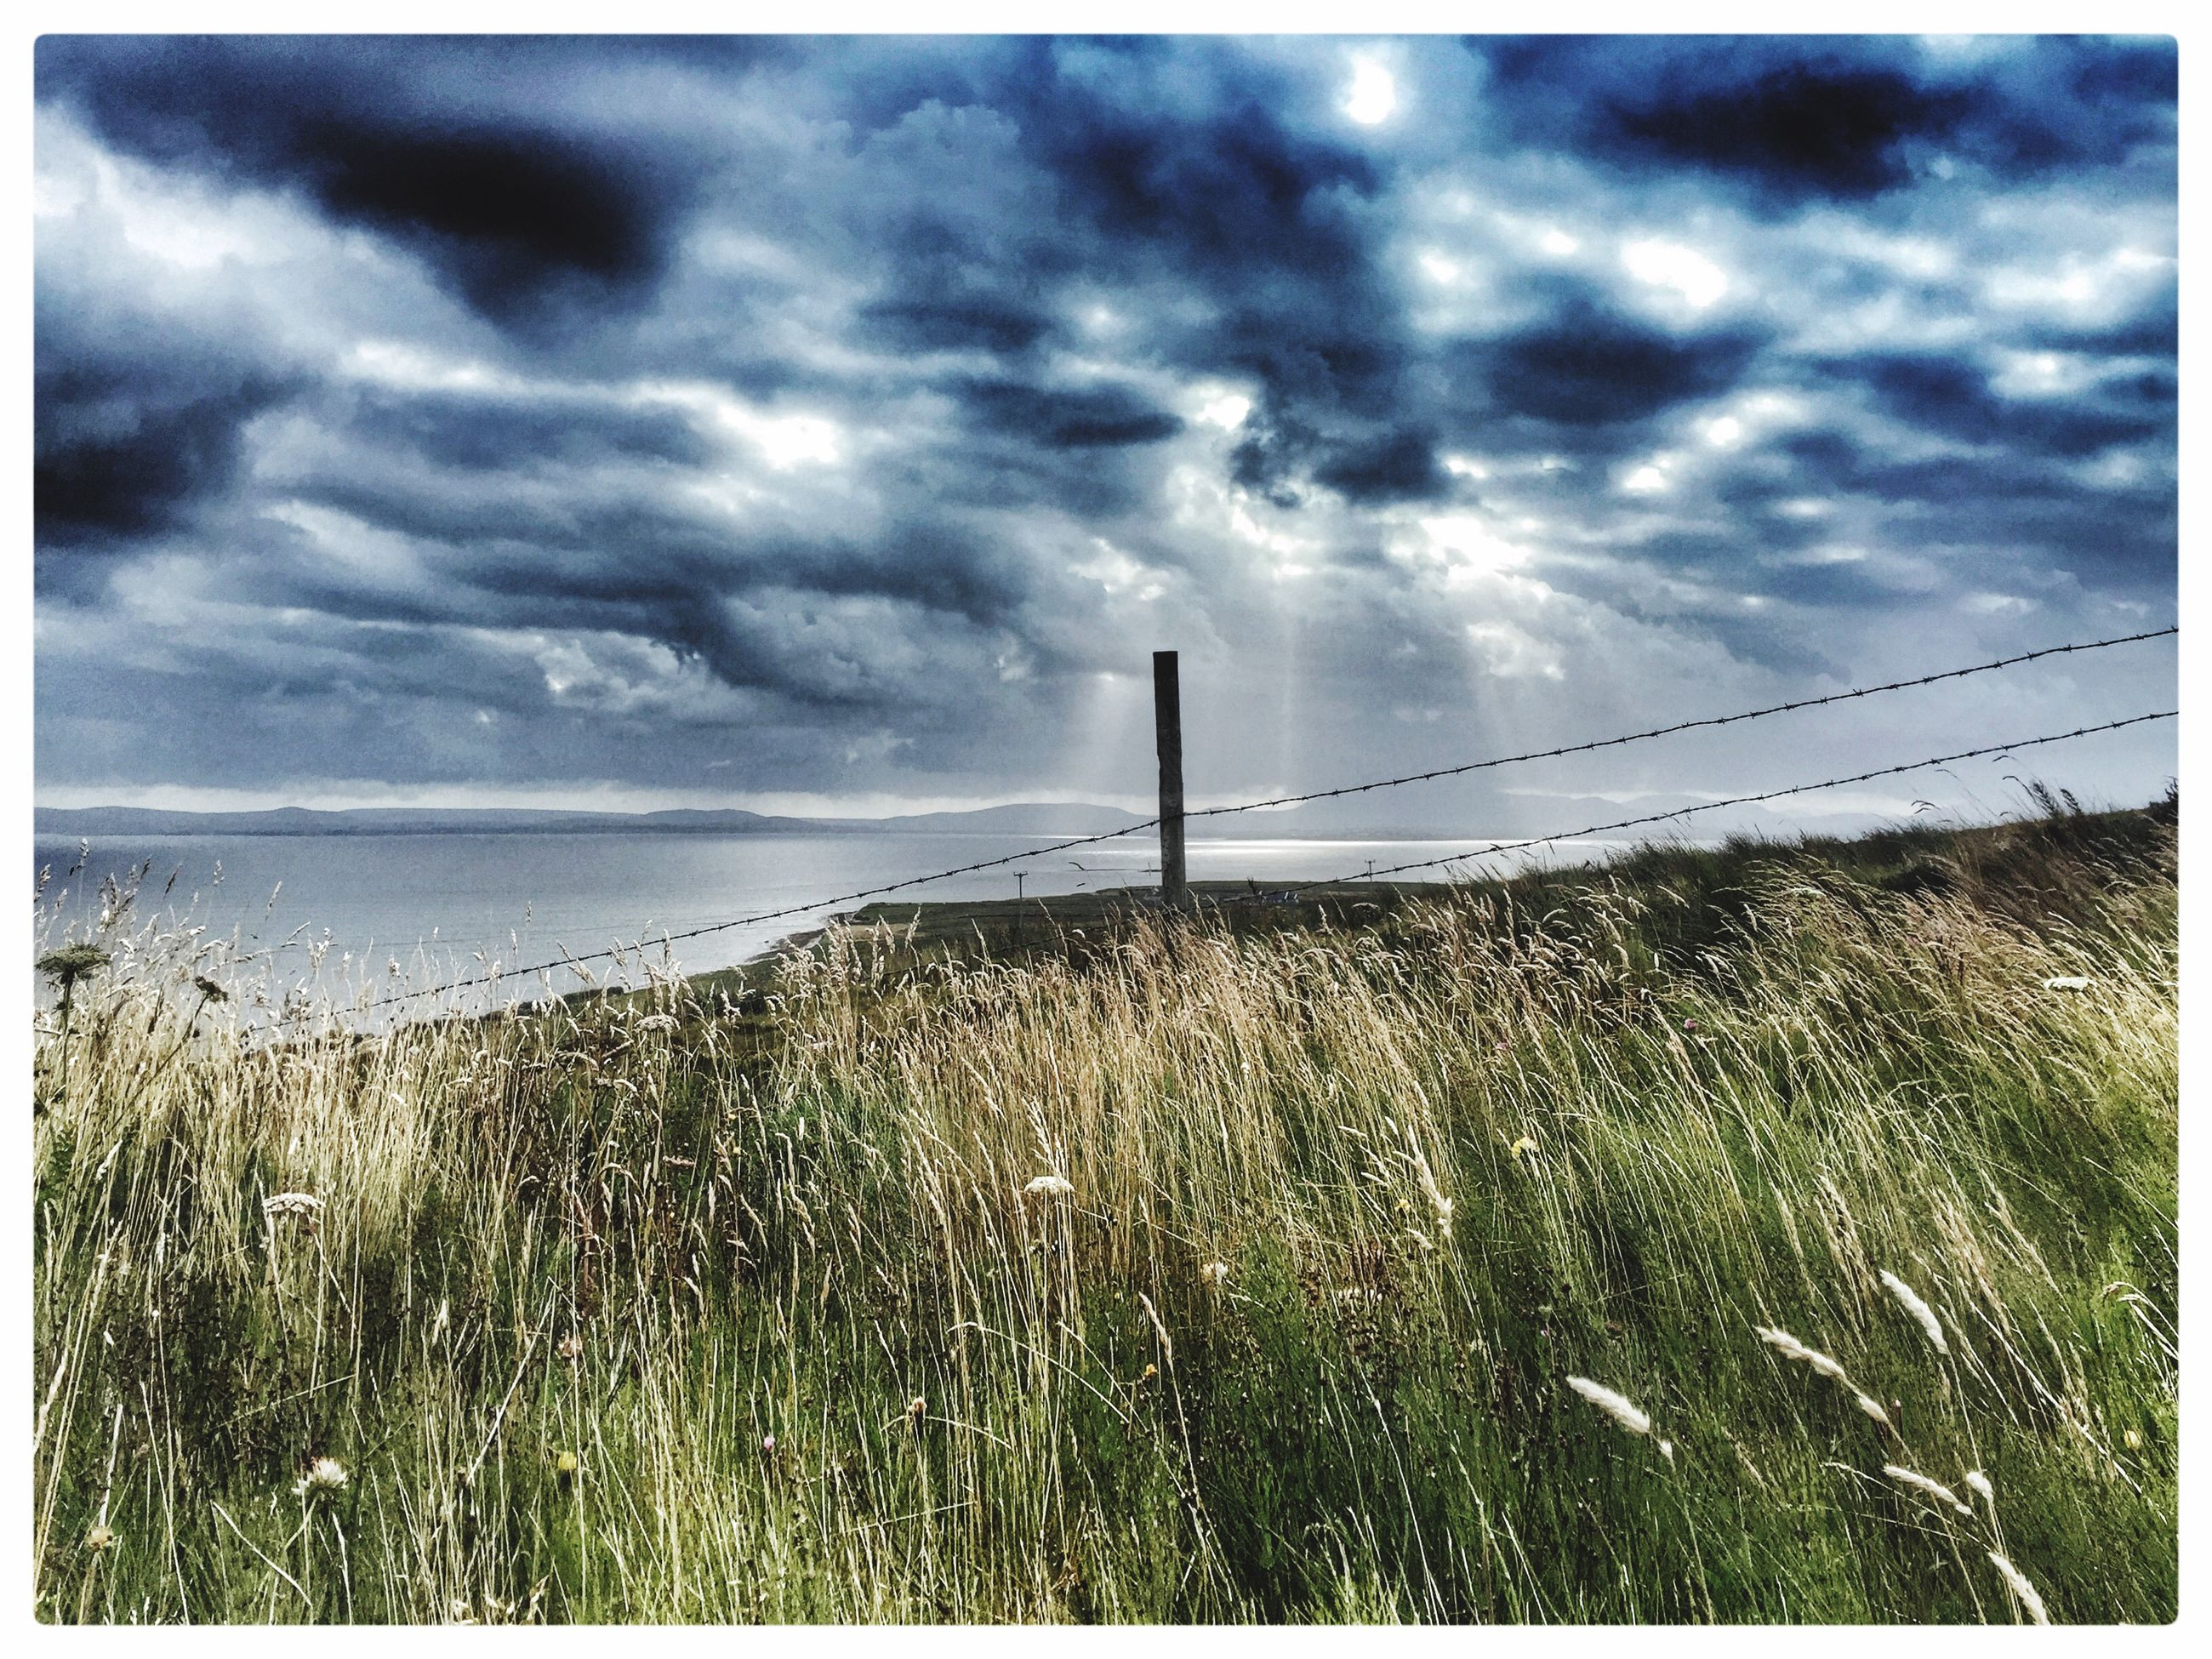 sky, sea, cloud - sky, horizon over water, water, cloudy, transfer print, tranquil scene, tranquility, scenics, auto post production filter, cloud, beauty in nature, nature, beach, grass, overcast, shore, weather, built structure